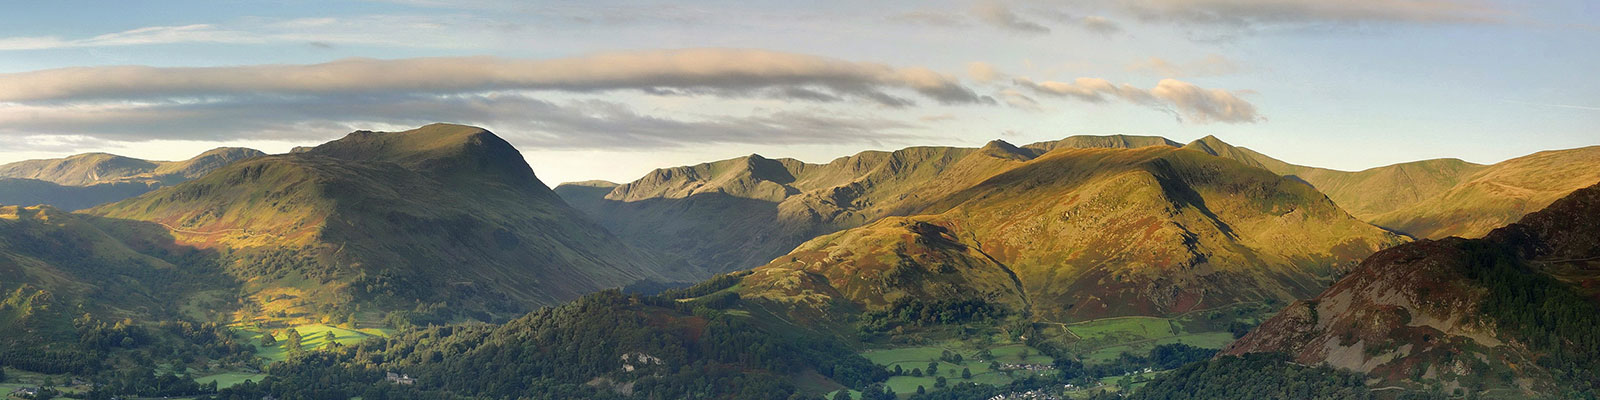 panoramic view of The Lake District